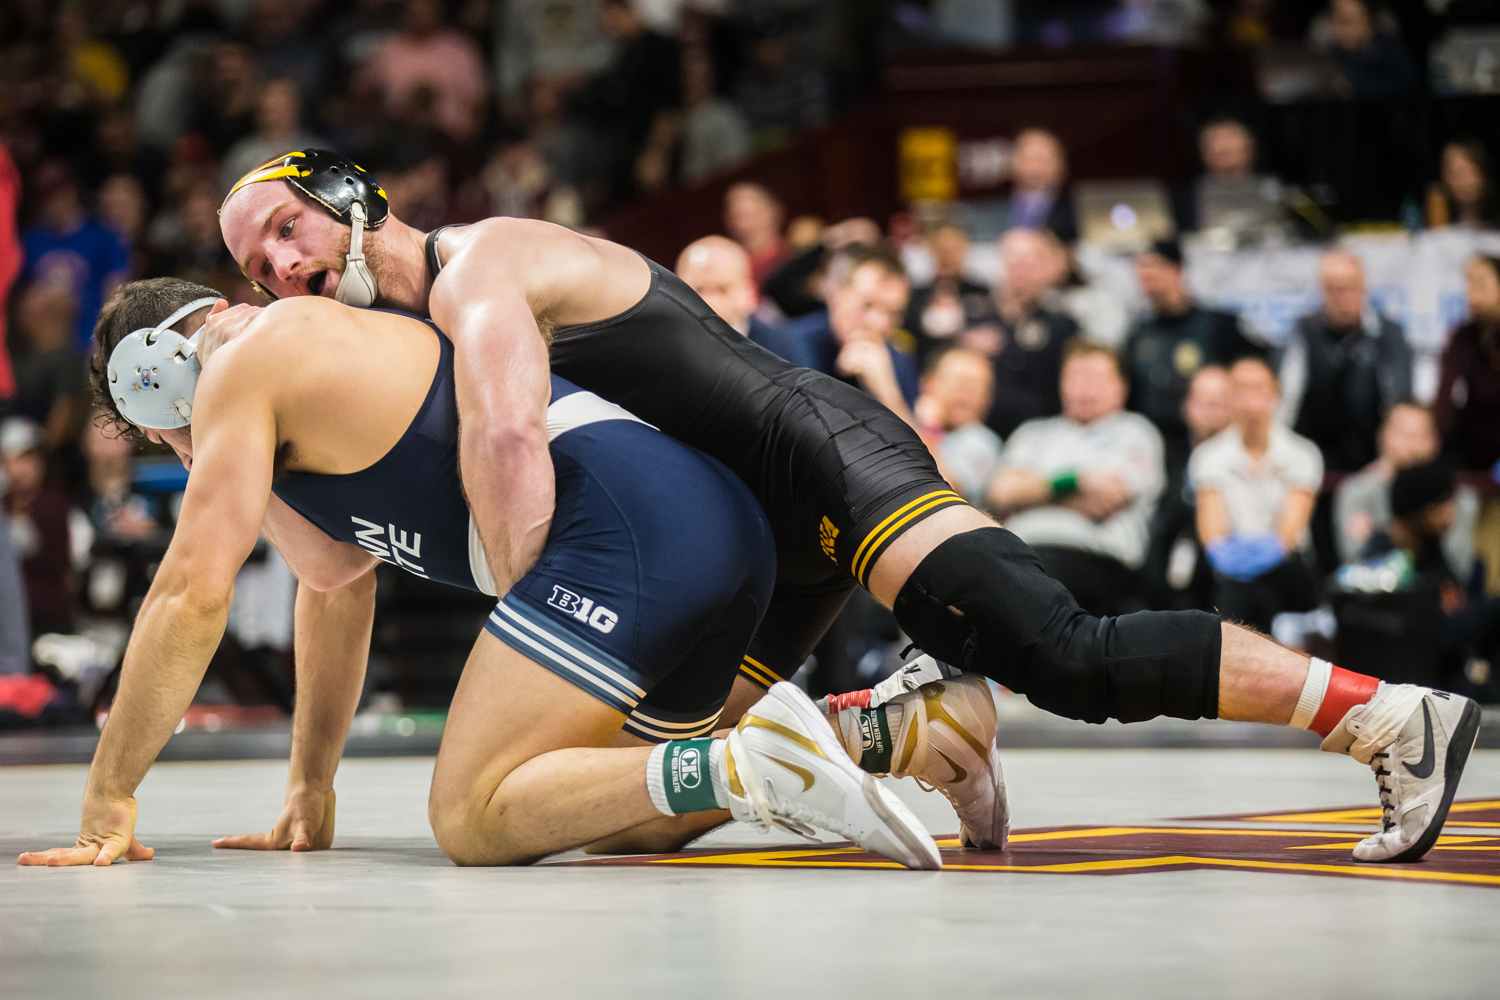 Iowa's 165-lb Alex Marinelli wrestles Penn State's Vincenzo Joseph during the fourth session of the 2019 Big Ten Wrestling Championships in Minneapolis, MN on Sunday, March 10, 2019. Marinelli won by decision, 9-3, and finished 1st in his weight class.